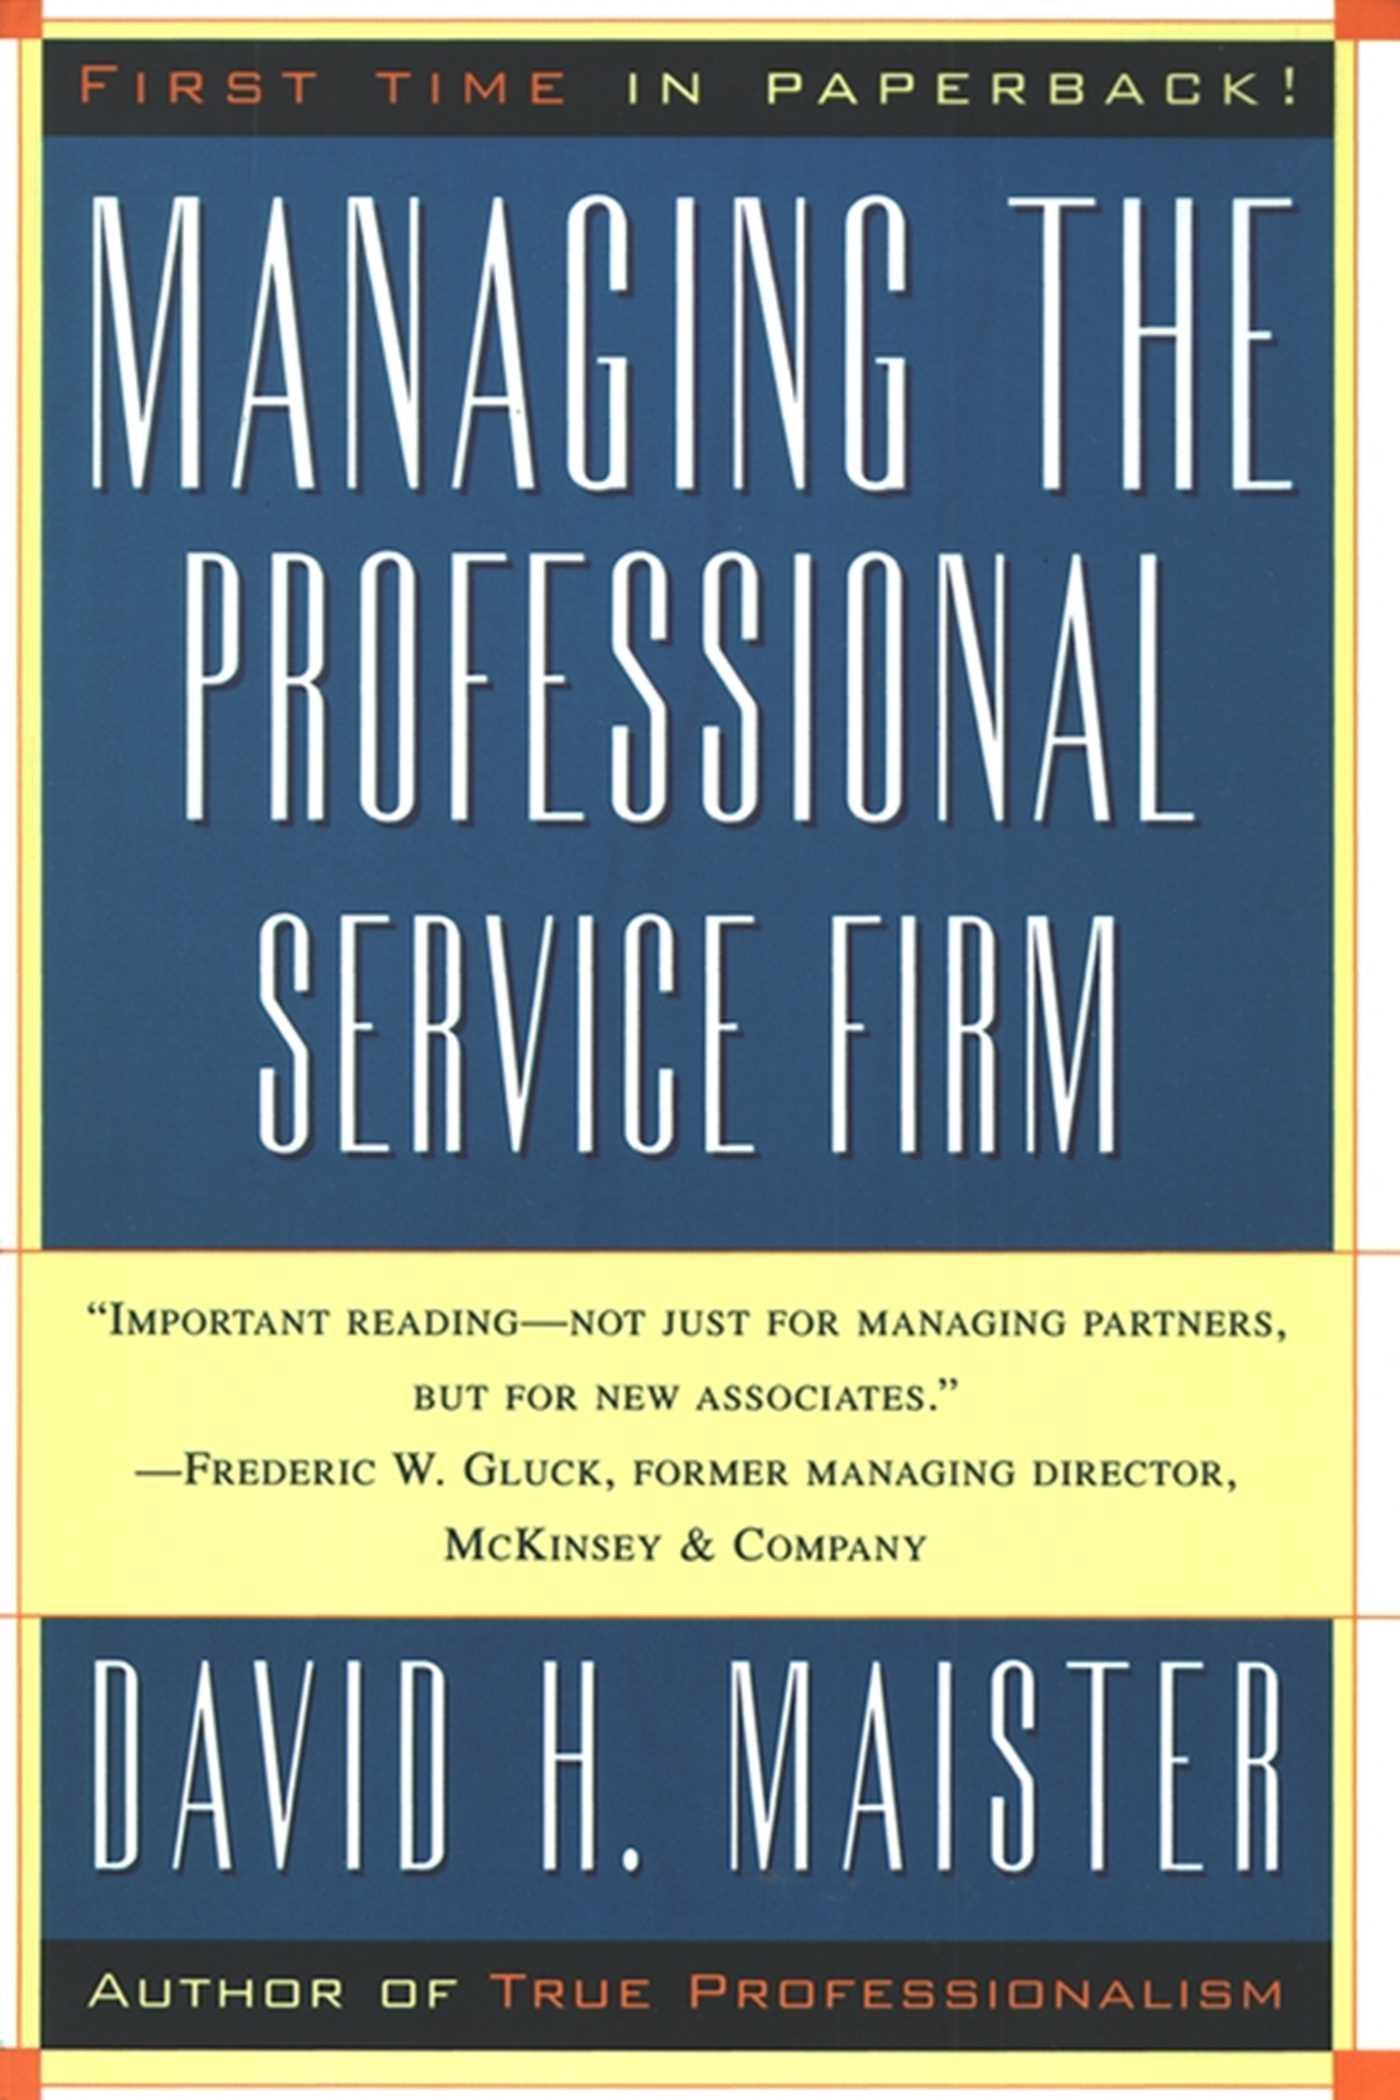 Download Ebook Managing The Professional Service Firm by David H. Maister Pdf